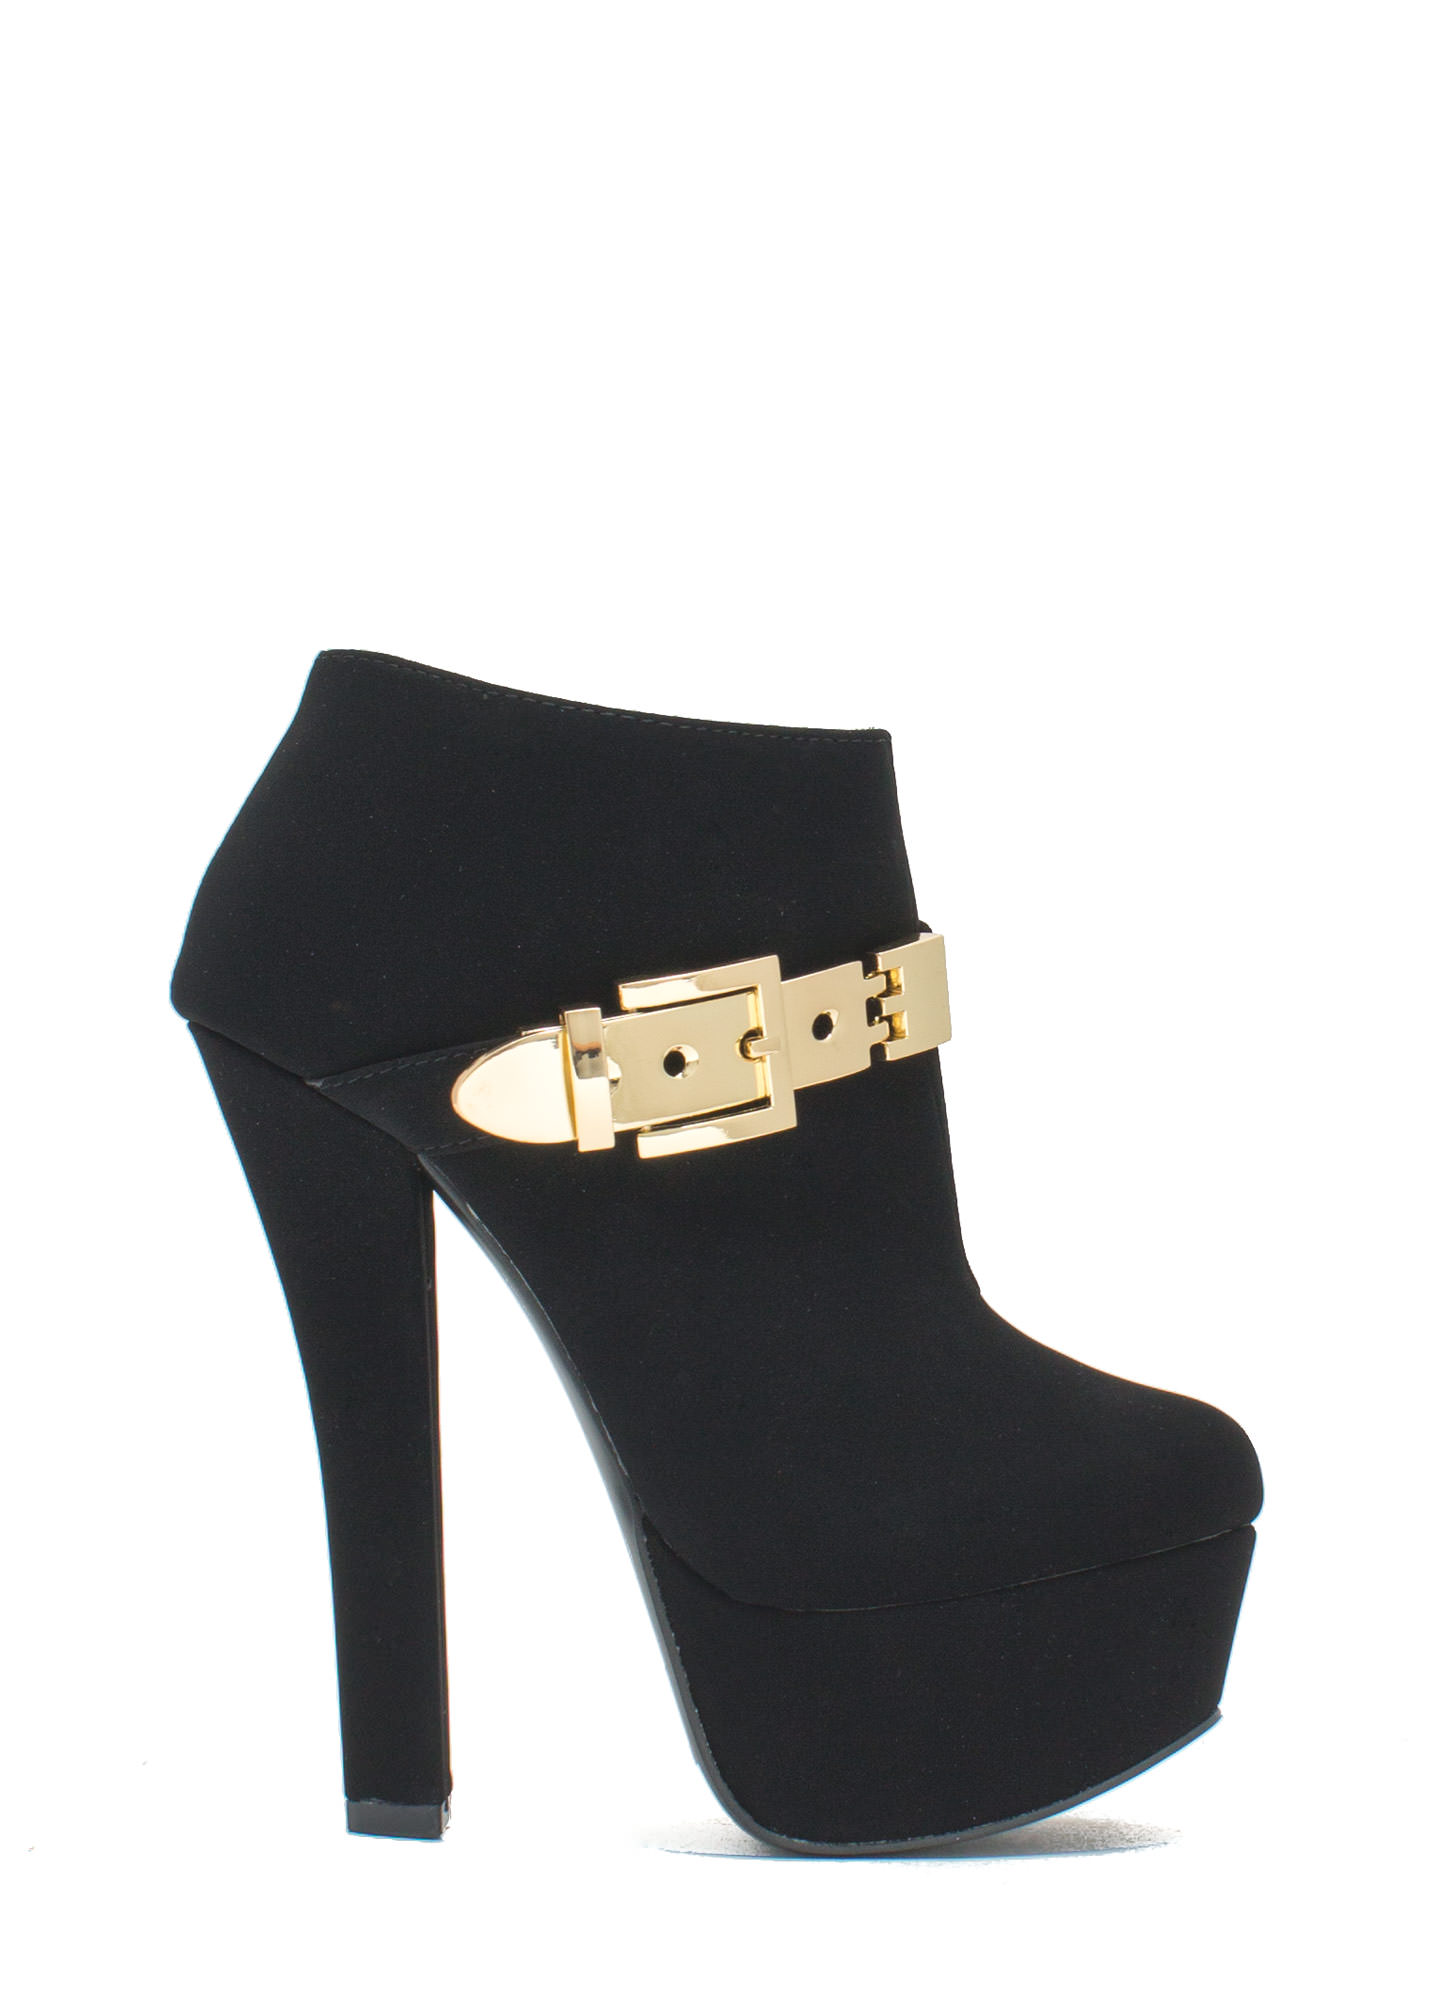 Queen Of Disco Metallic Buckle Booties BLACK